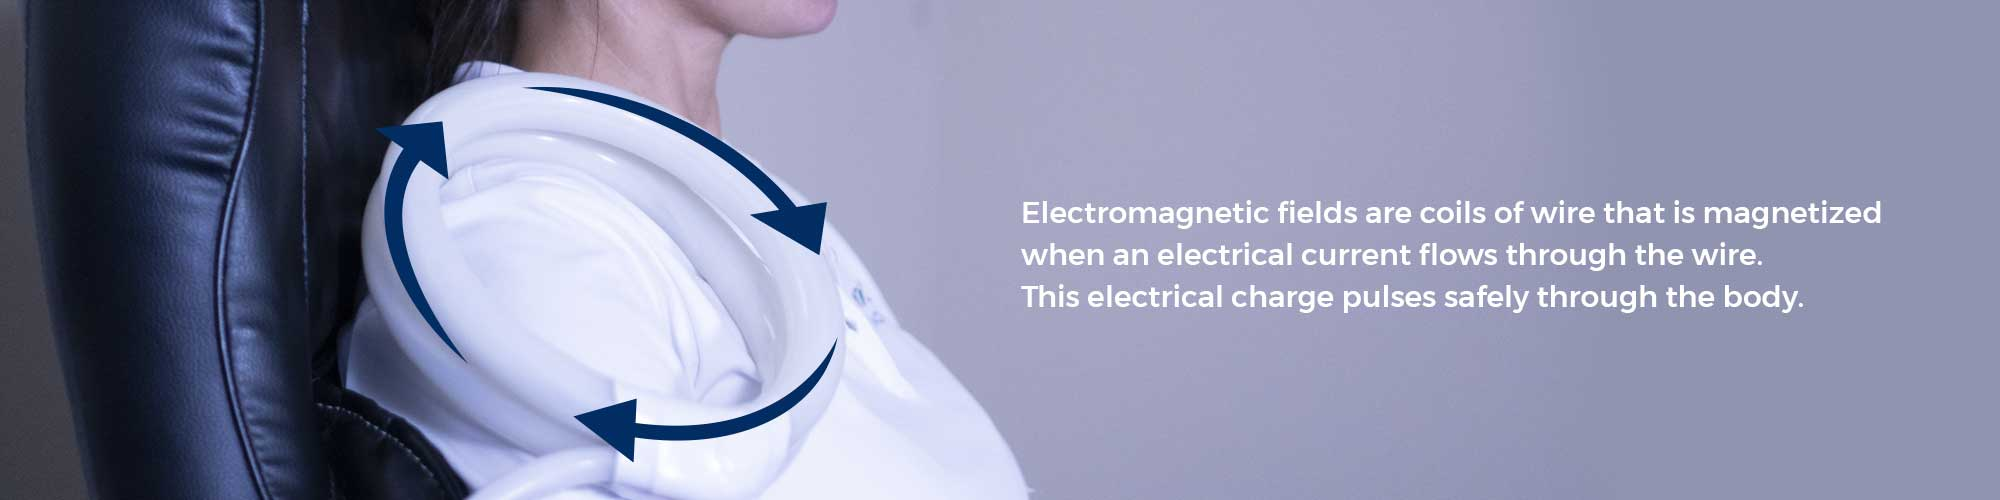 Electromagnetic fields are coils of wire that is magnetized when an electrical current flows through the wire. This electrical charge pulses safely through the body.